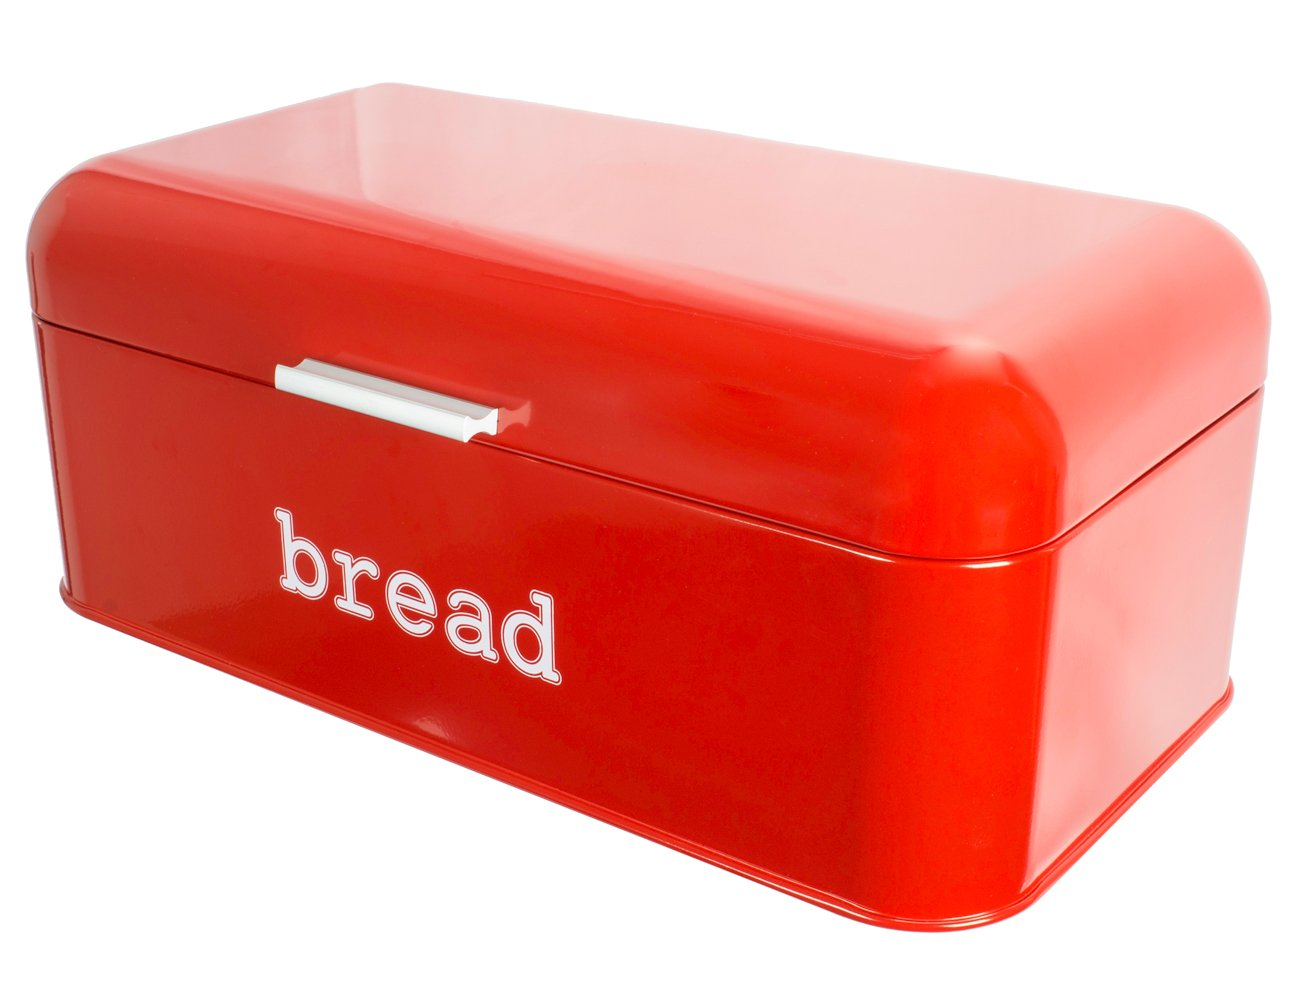 Juvale Bread Box for Kitchen Counter - Stainless Steel Bread Bin Storage Container For Loaves, Pastries, and More - Retro/Vintage Inspired Design, Red, 16.75 x 9 x 6.5 inches